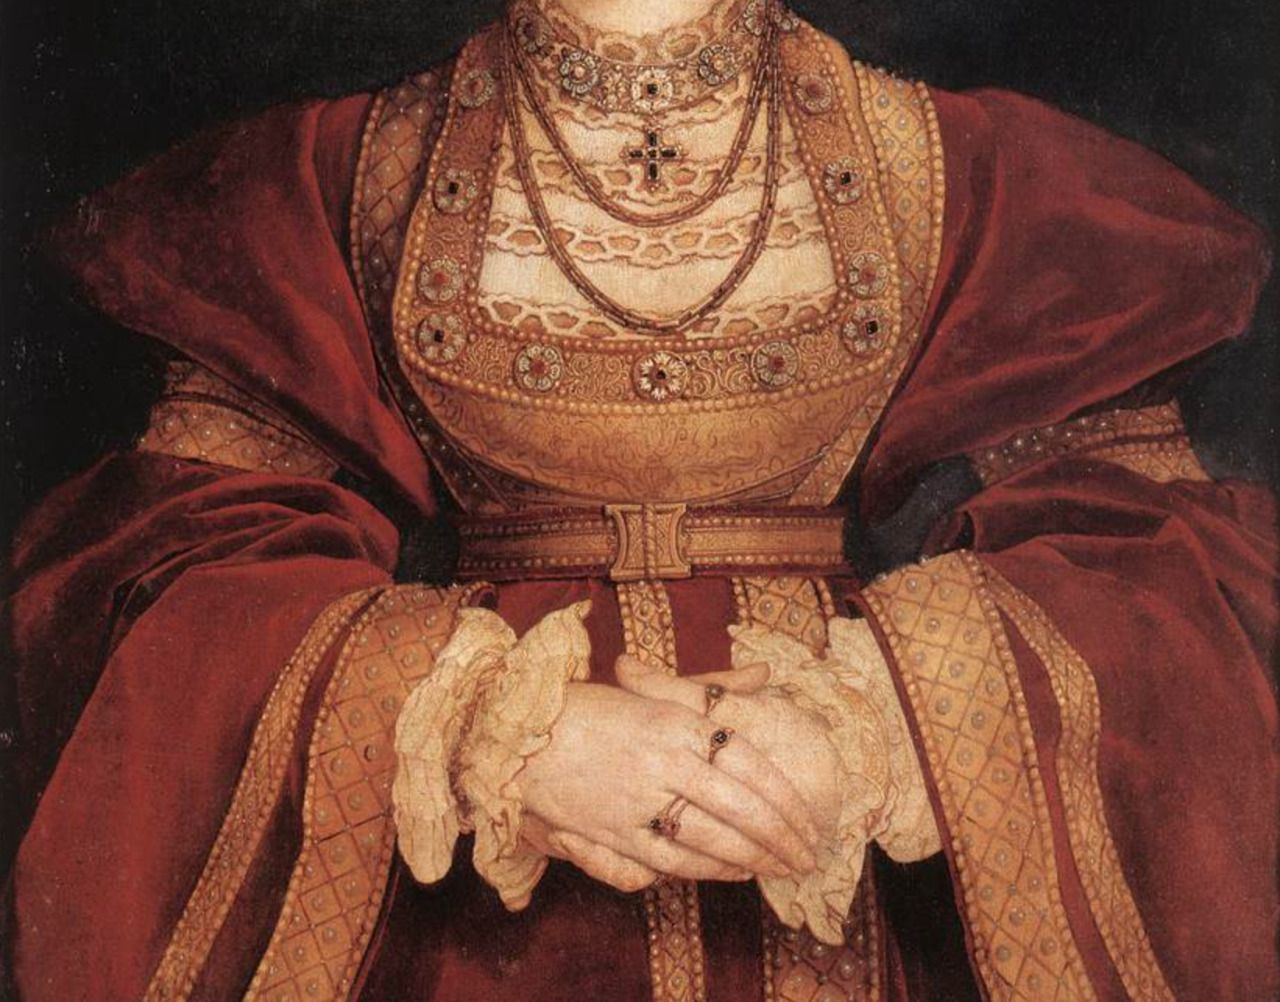 Anne of Cleves (detail) by Hans Holbein the Younger, 1539